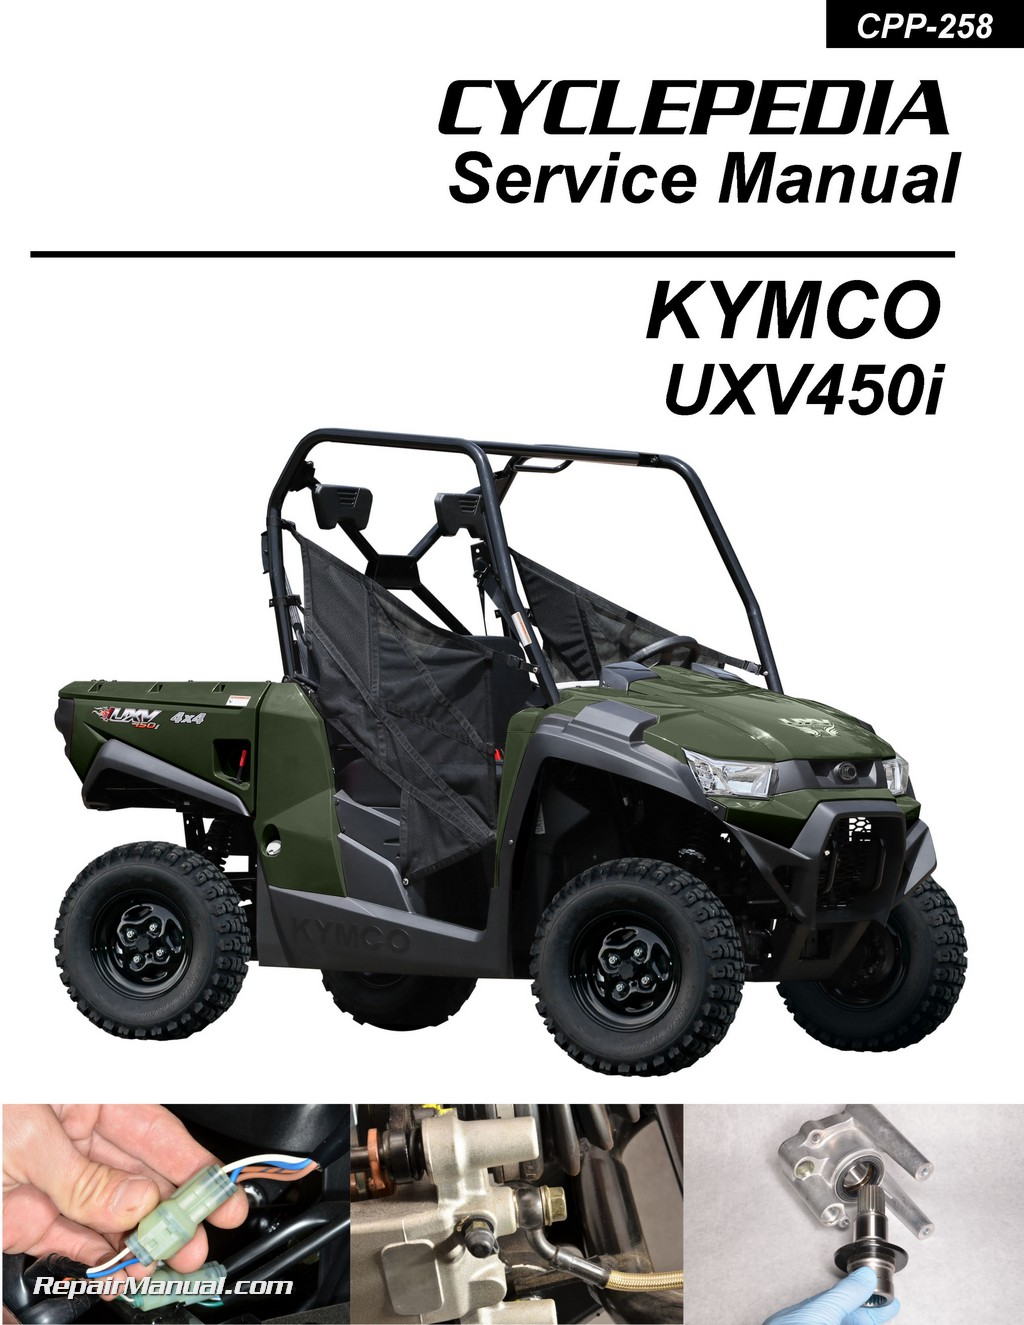 Kymco Uxv 450i 4x4 Side X Side Printed Service Manual By